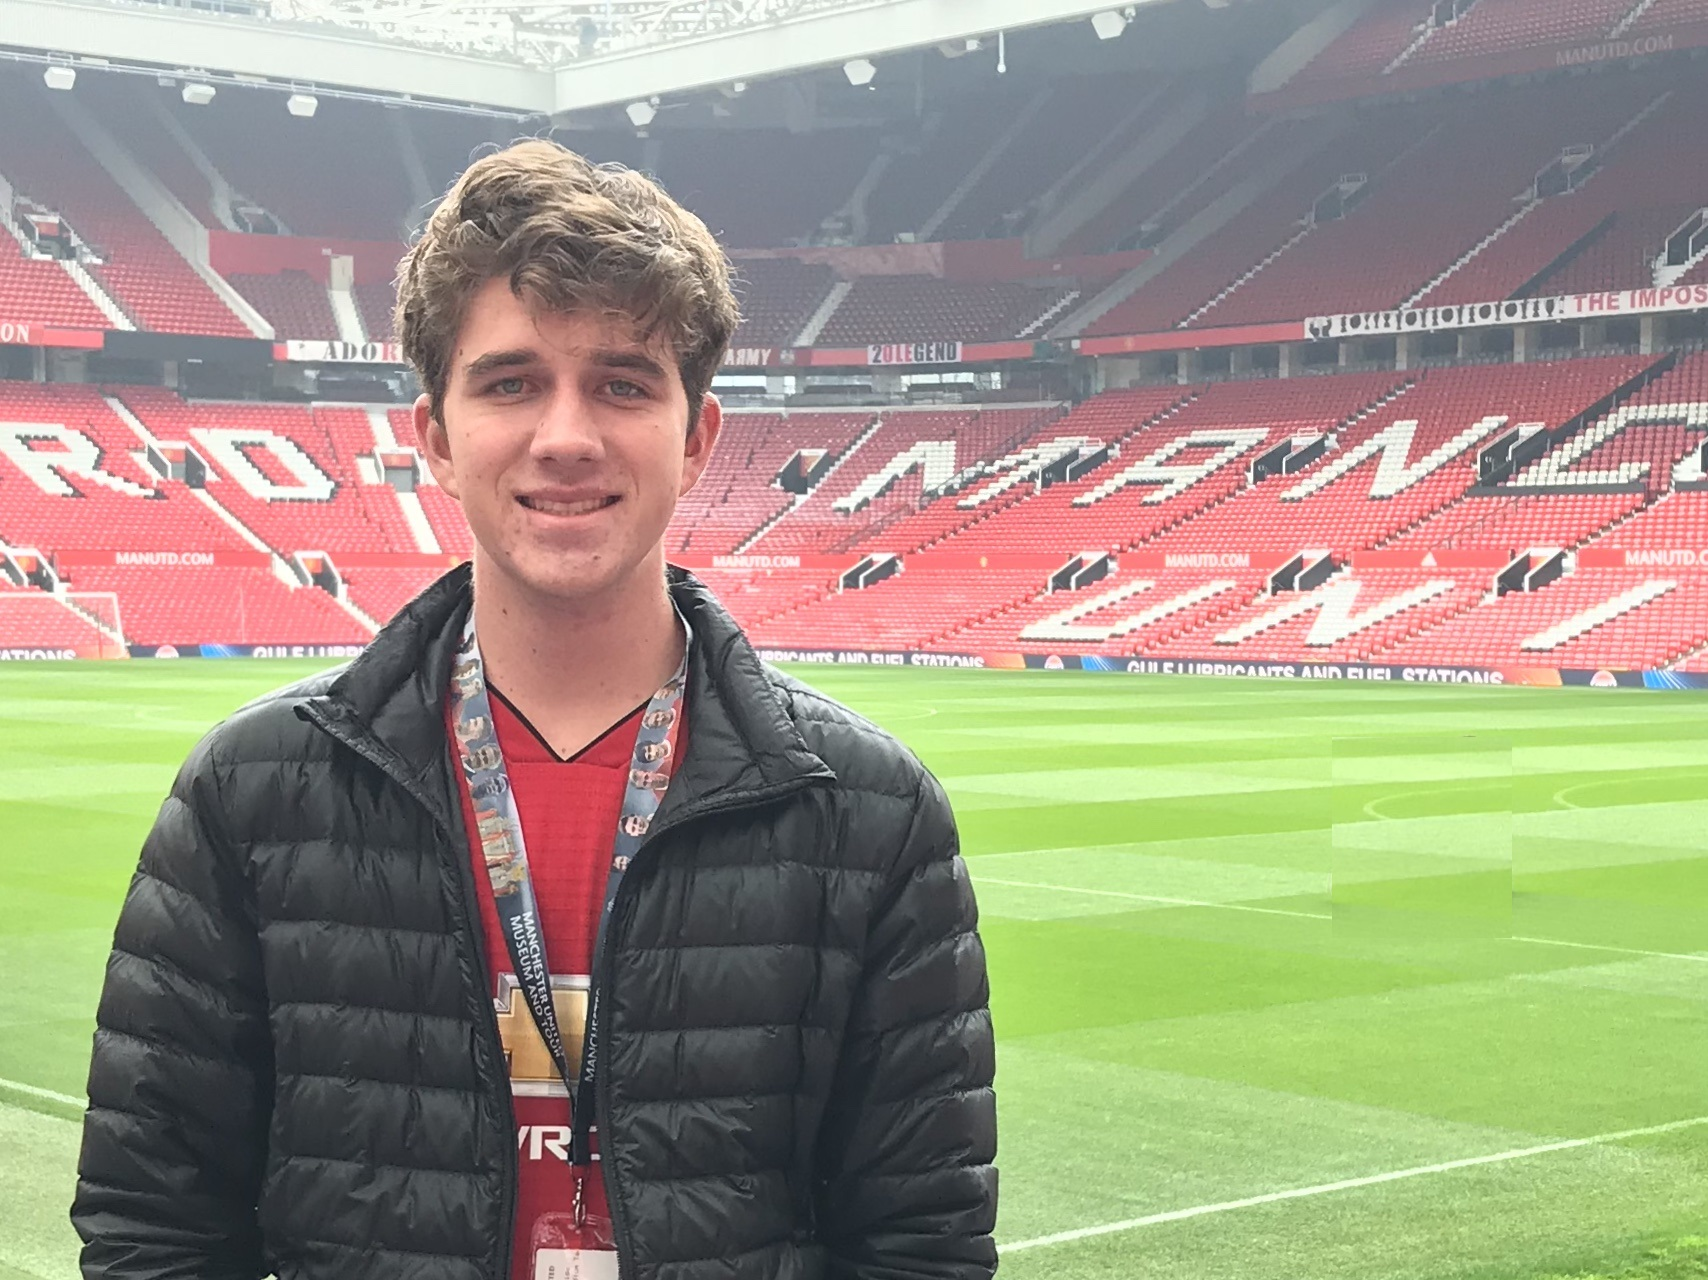 Sam Williams stands on the field at Old Trafford Stadium, the world-famous home of Manchester United.